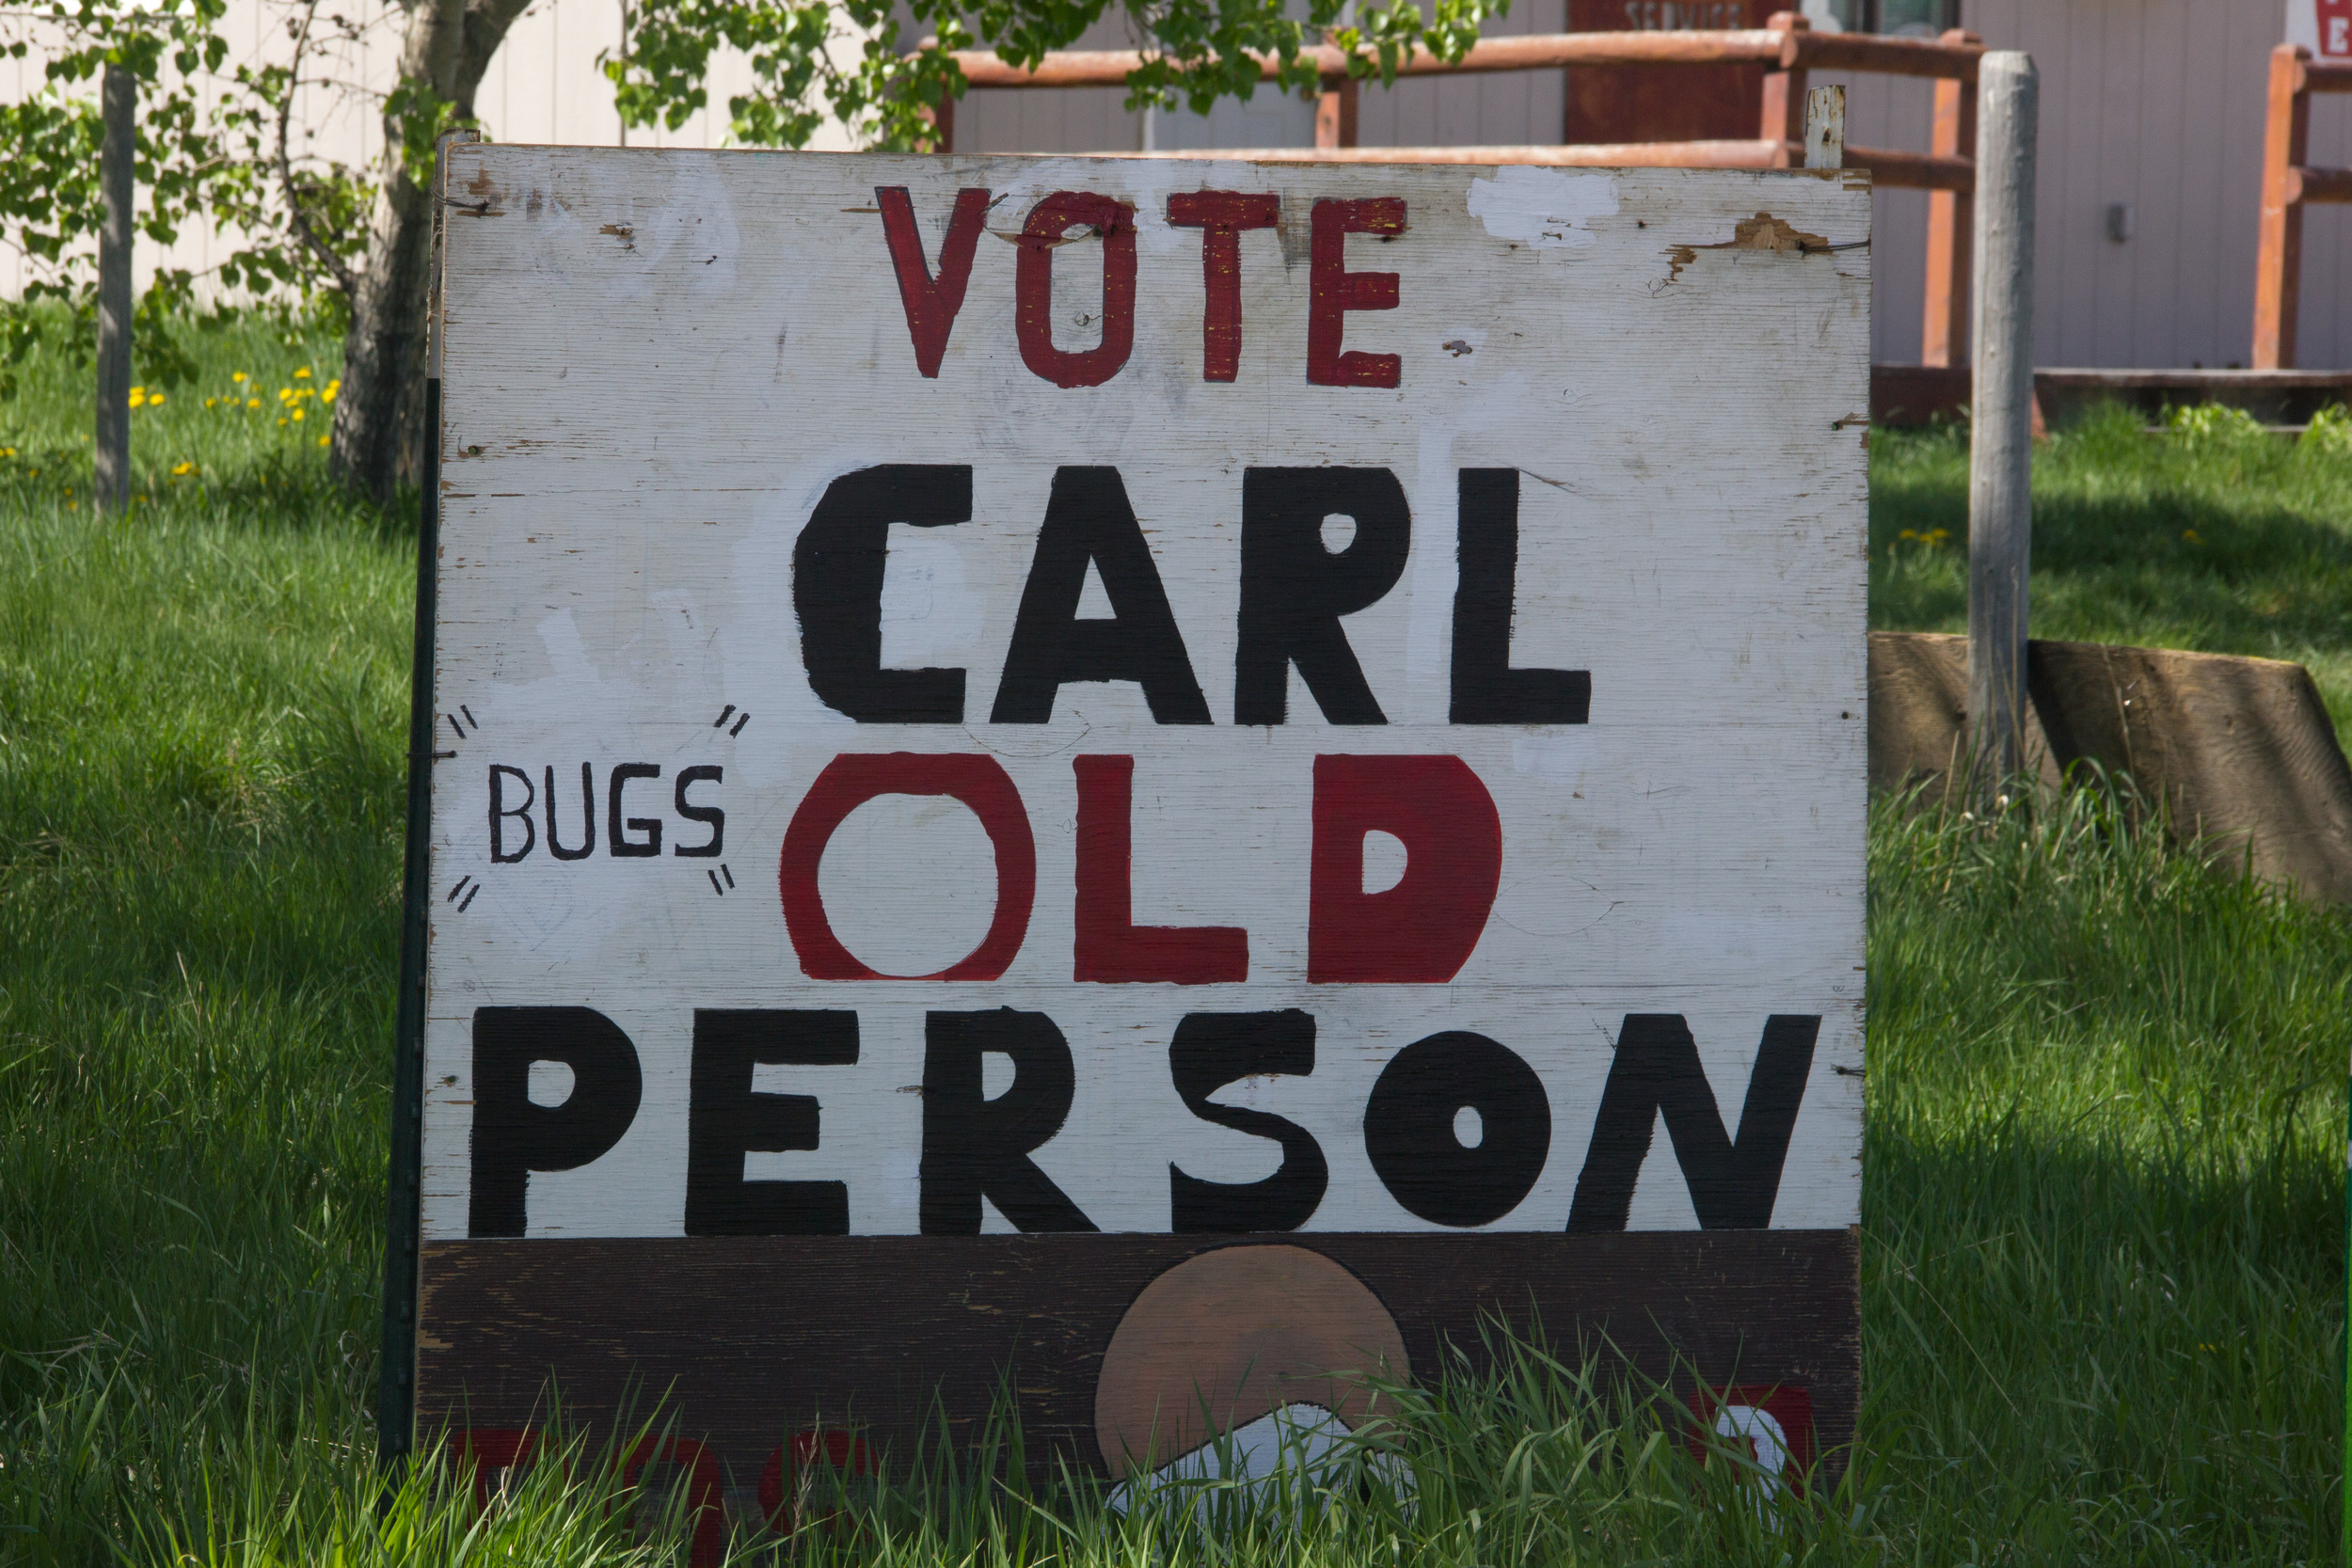 I'd vote for Bugs any day